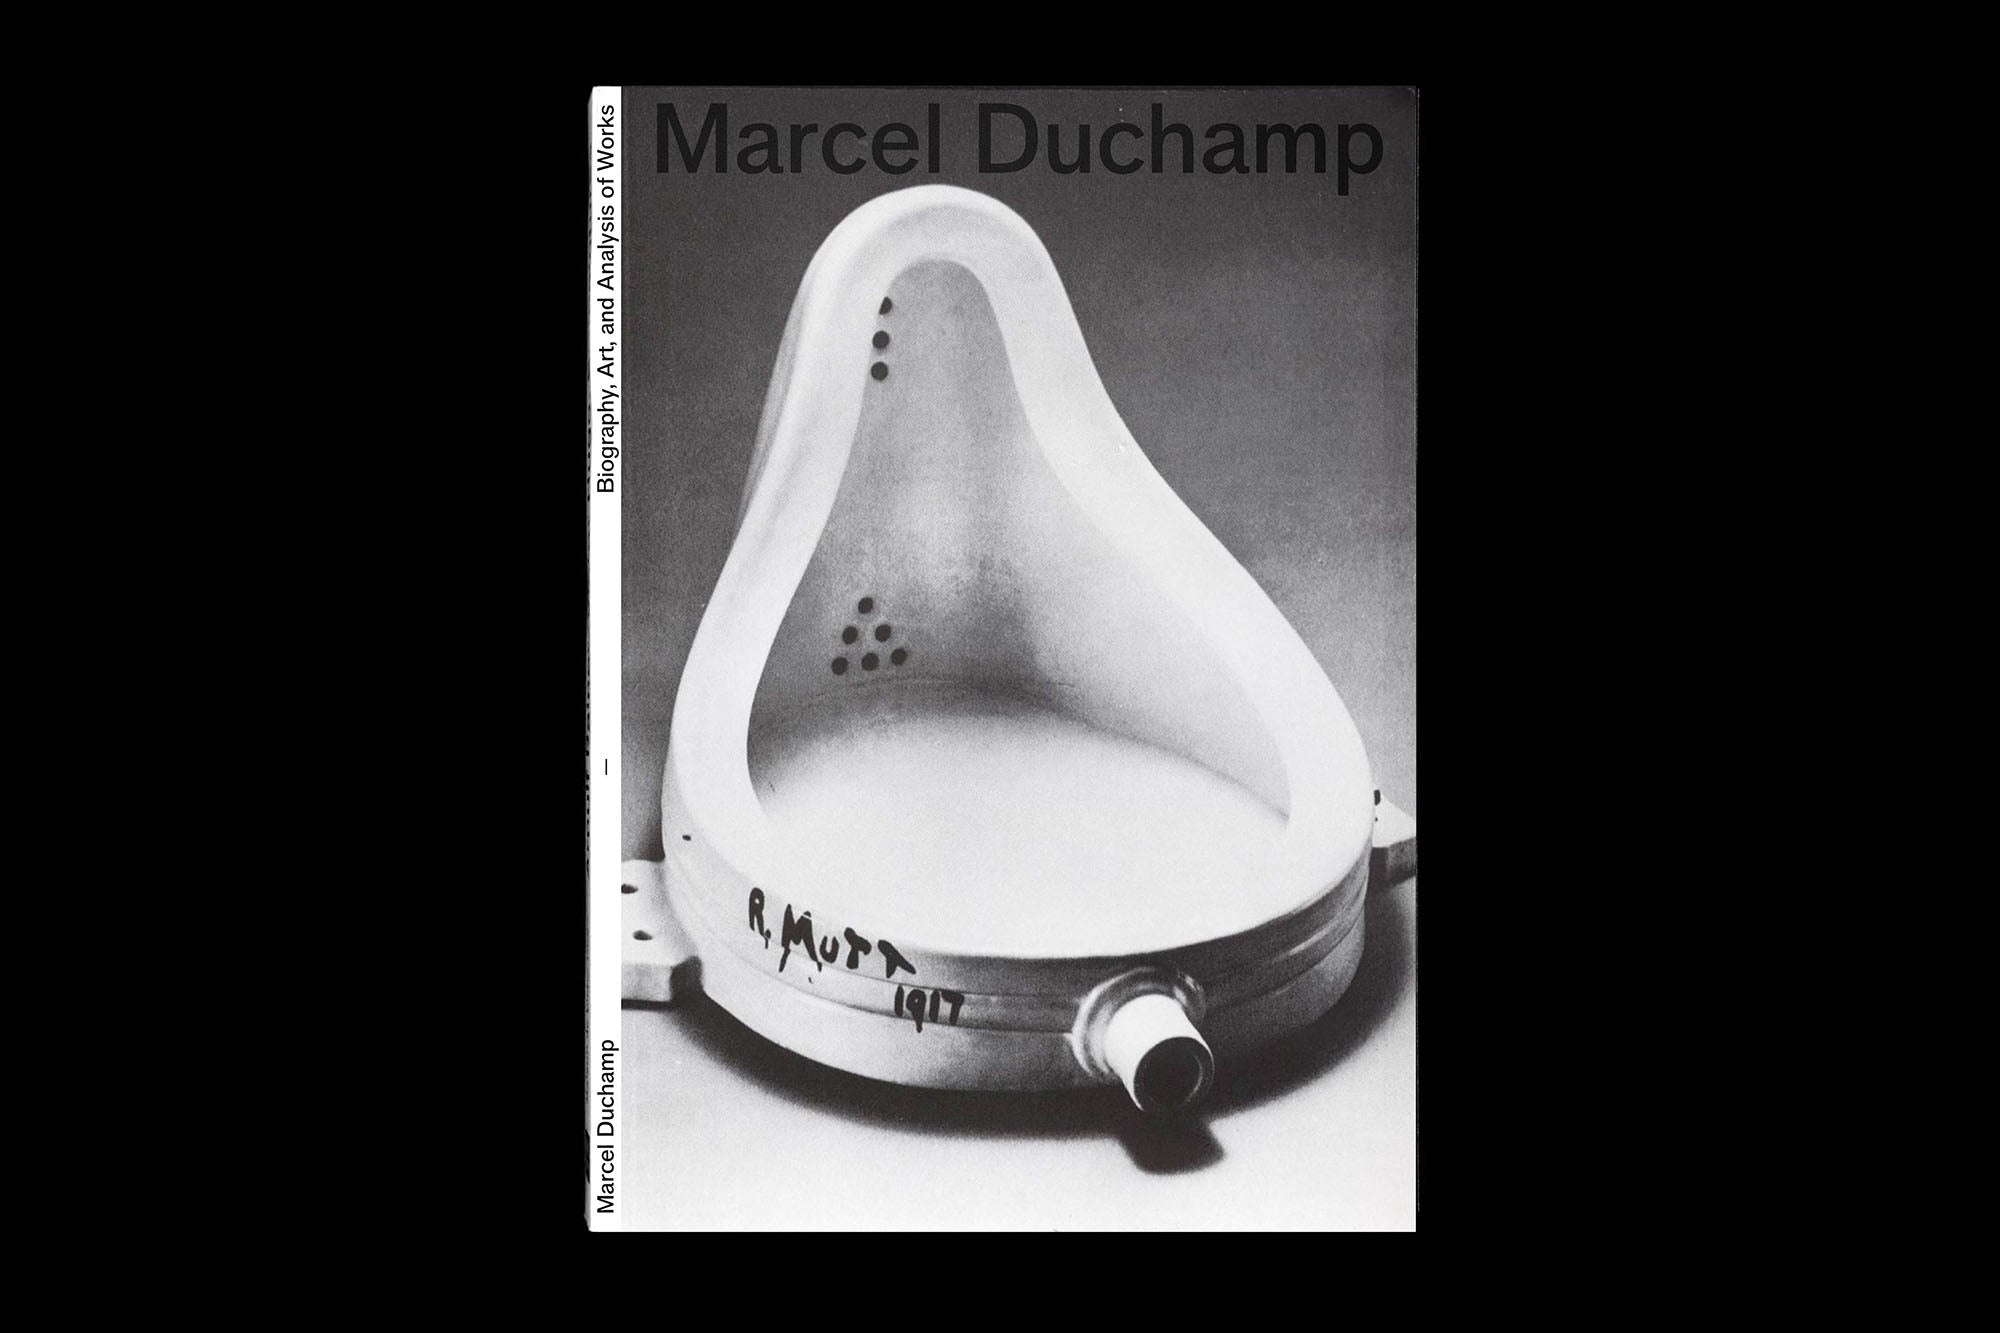 Brando Corradini: Marcel Duchamp, Pierre Gassmann and Man Ray